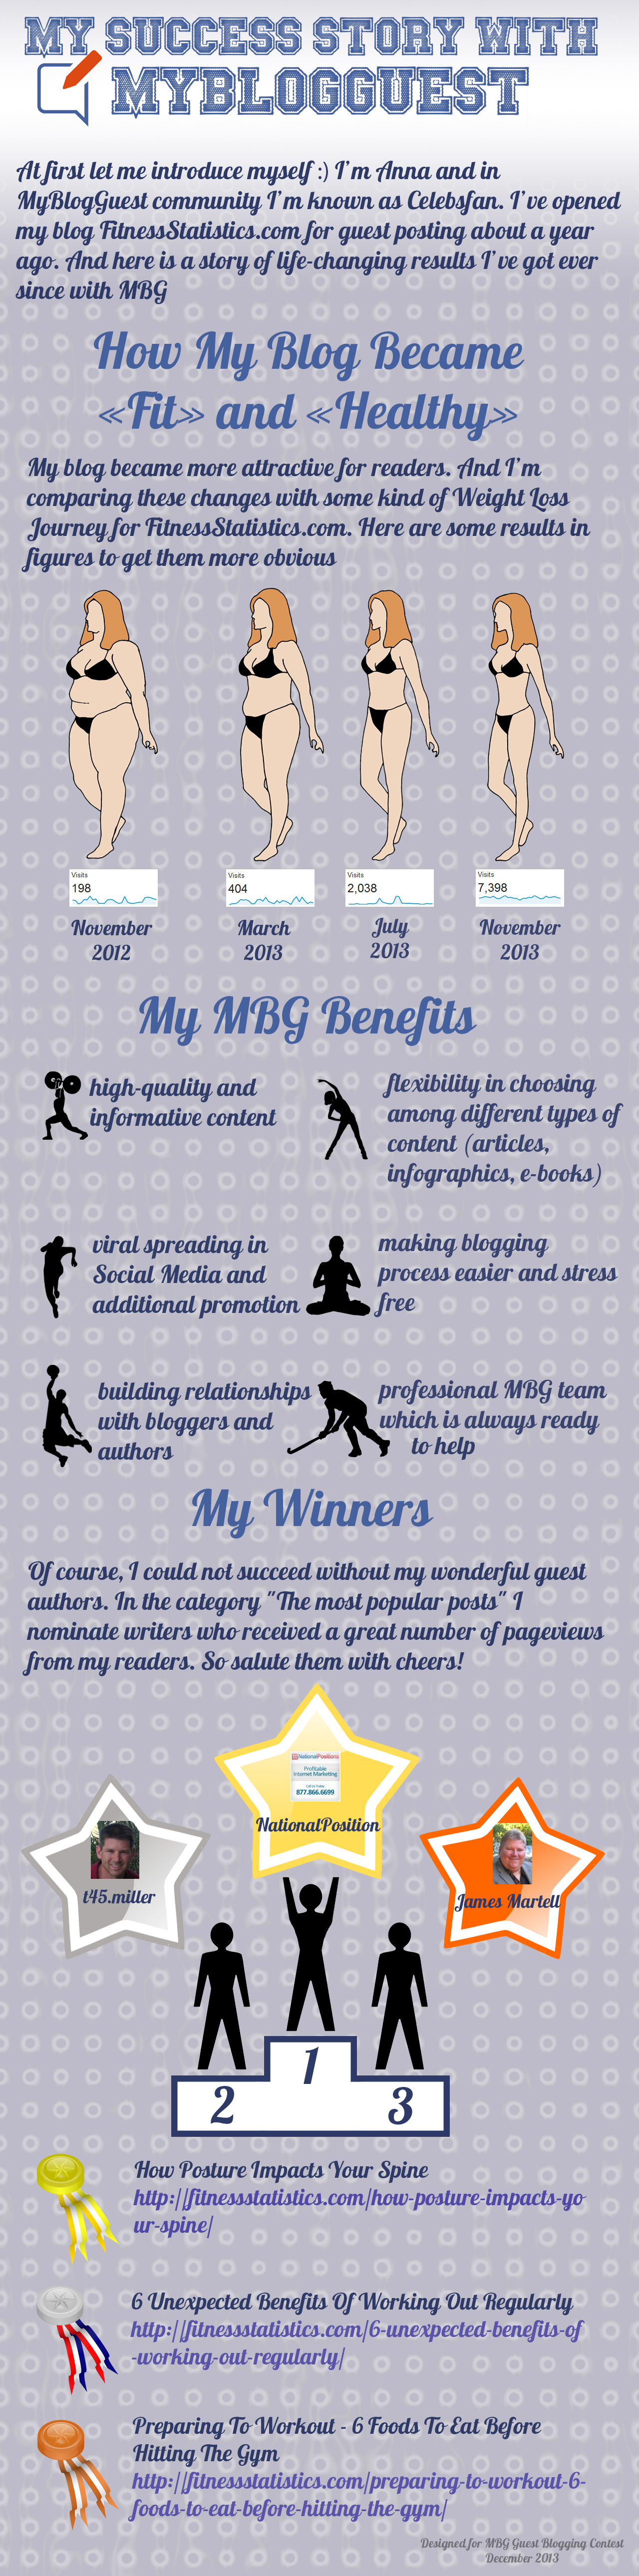 myblogguest-success-story-infographic